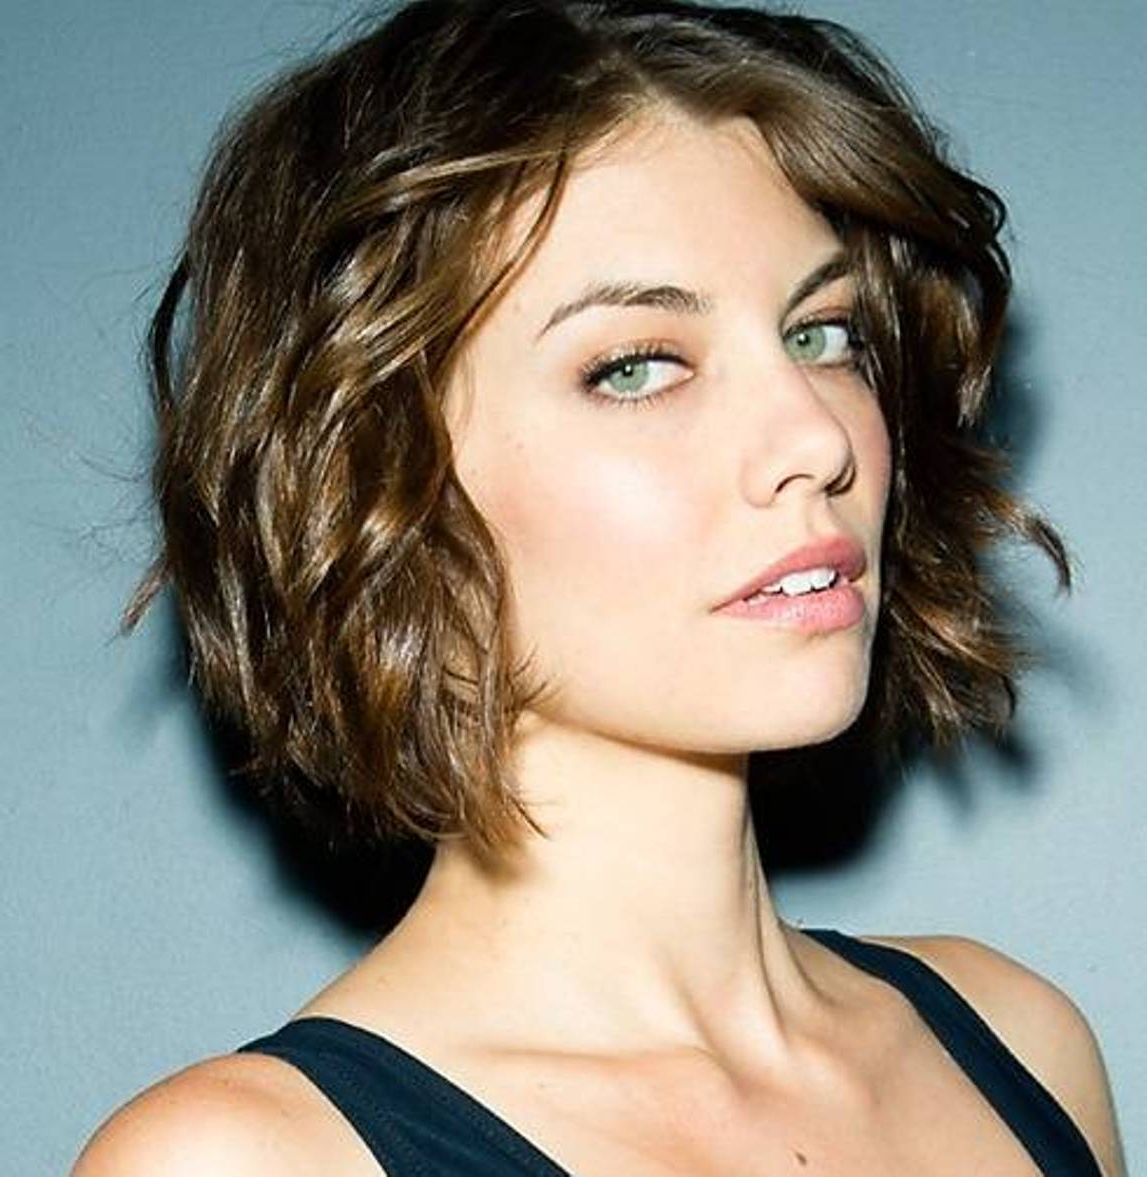 30 Short Wavy Hairstyles For Bouncy Textured Looks Throughout Thick Curly Short Haircuts (View 8 of 25)